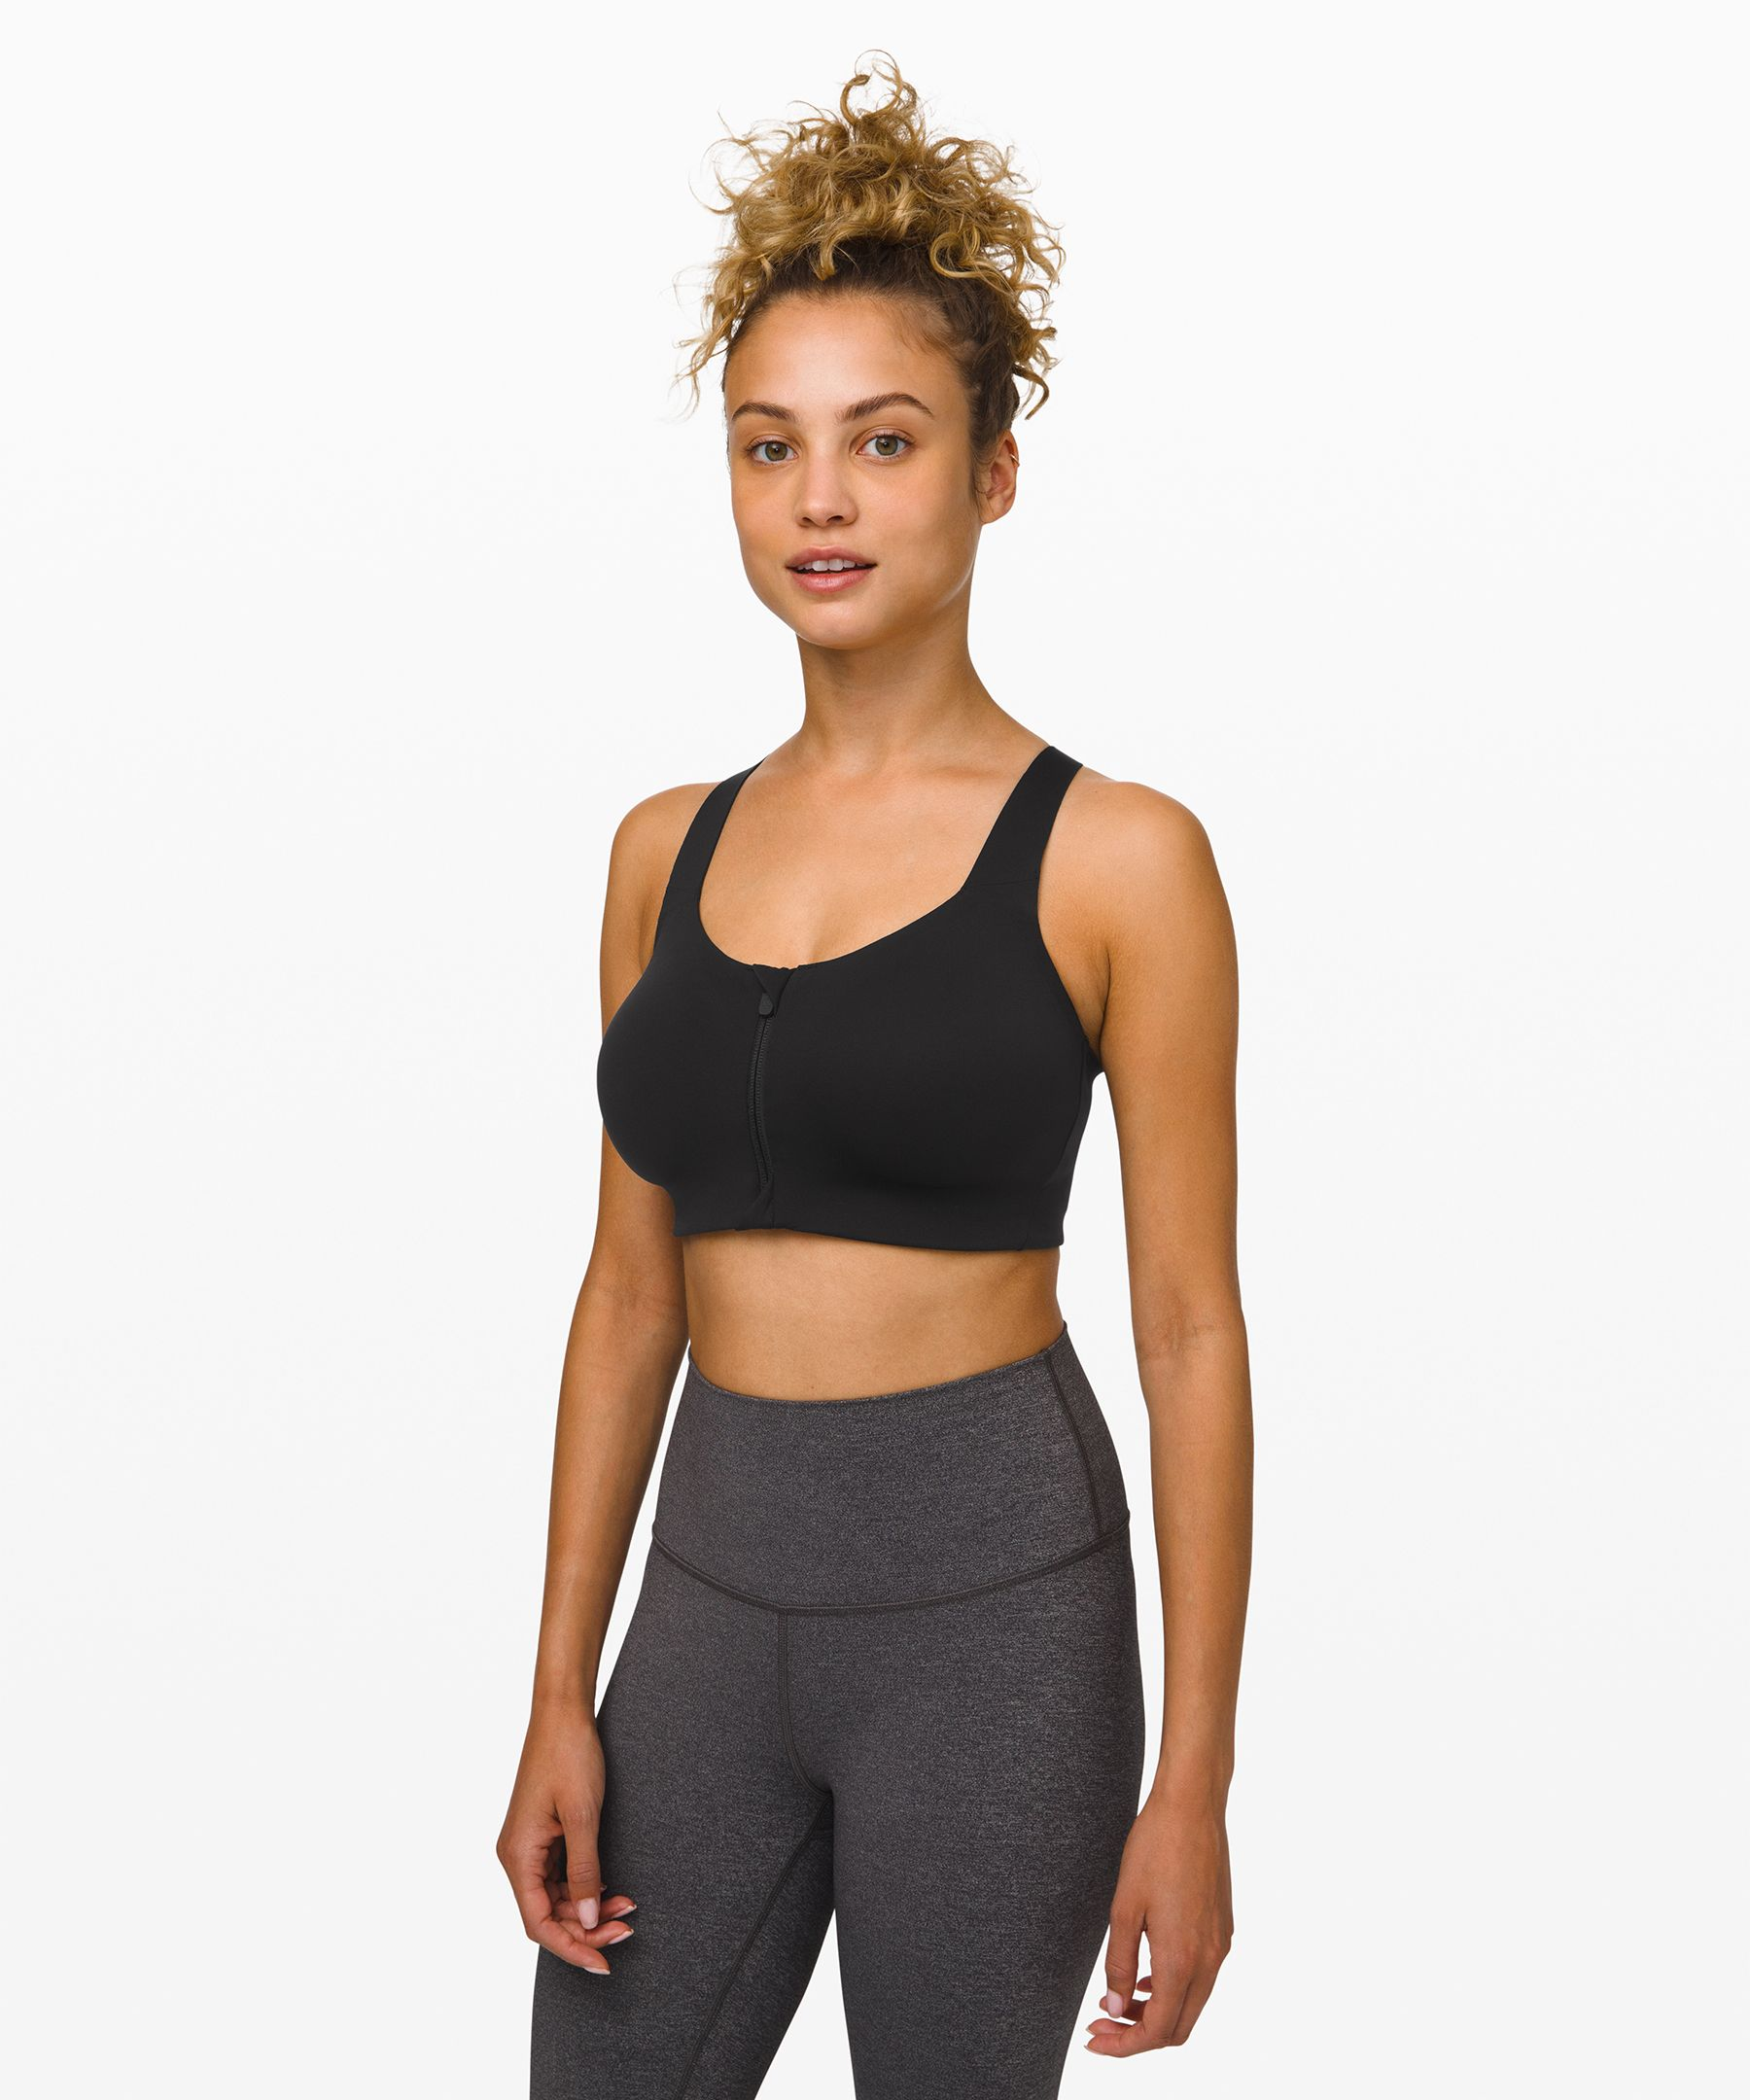 Take Power Bra*Medium Support, B–E Cups (Online Only)